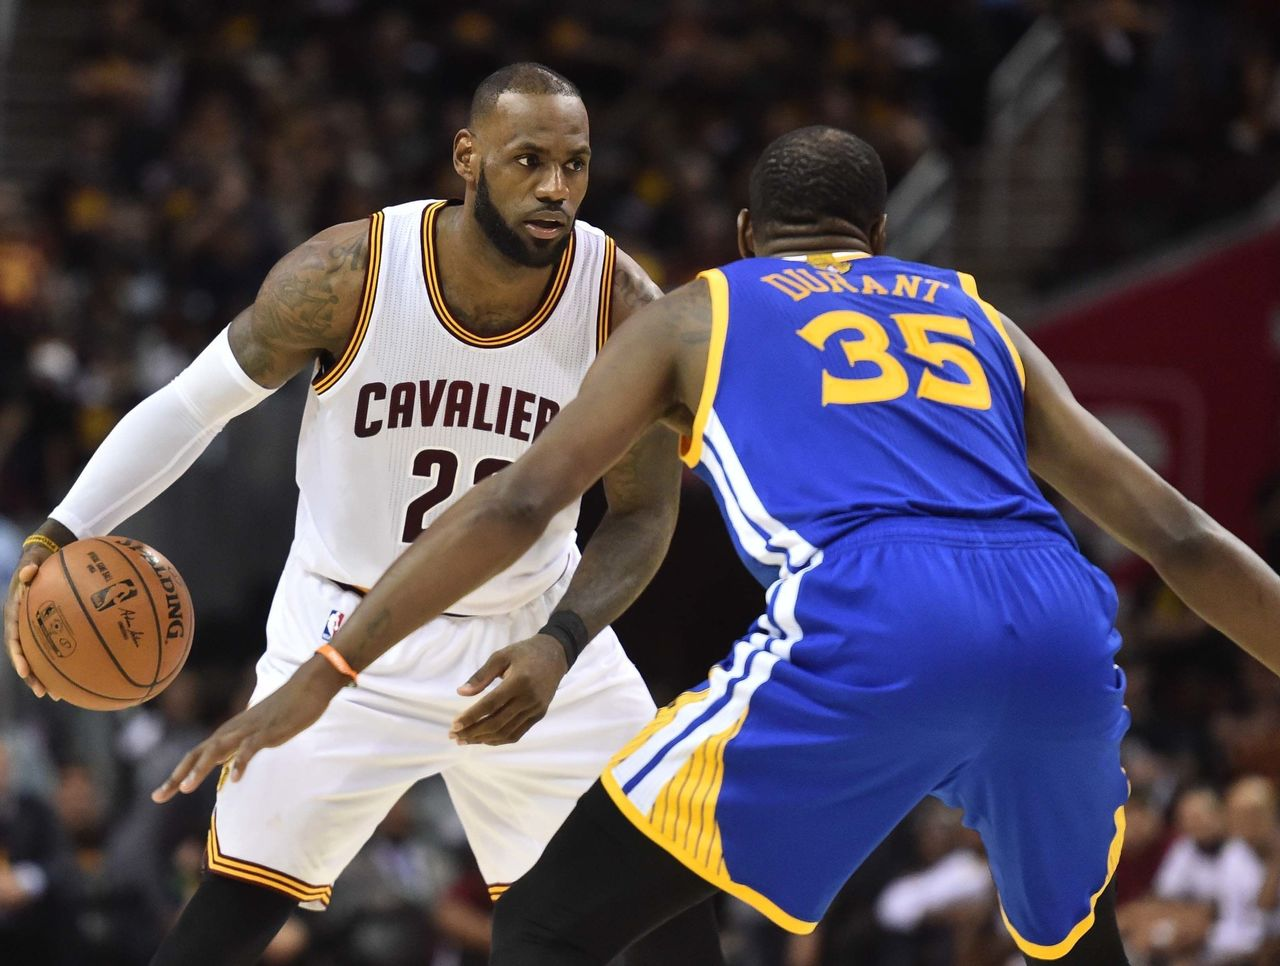 Cropped 2017 06 08t025310z 43885341 nocid rtrmadp 3 nba finals golden state warriors at cleveland cavaliers